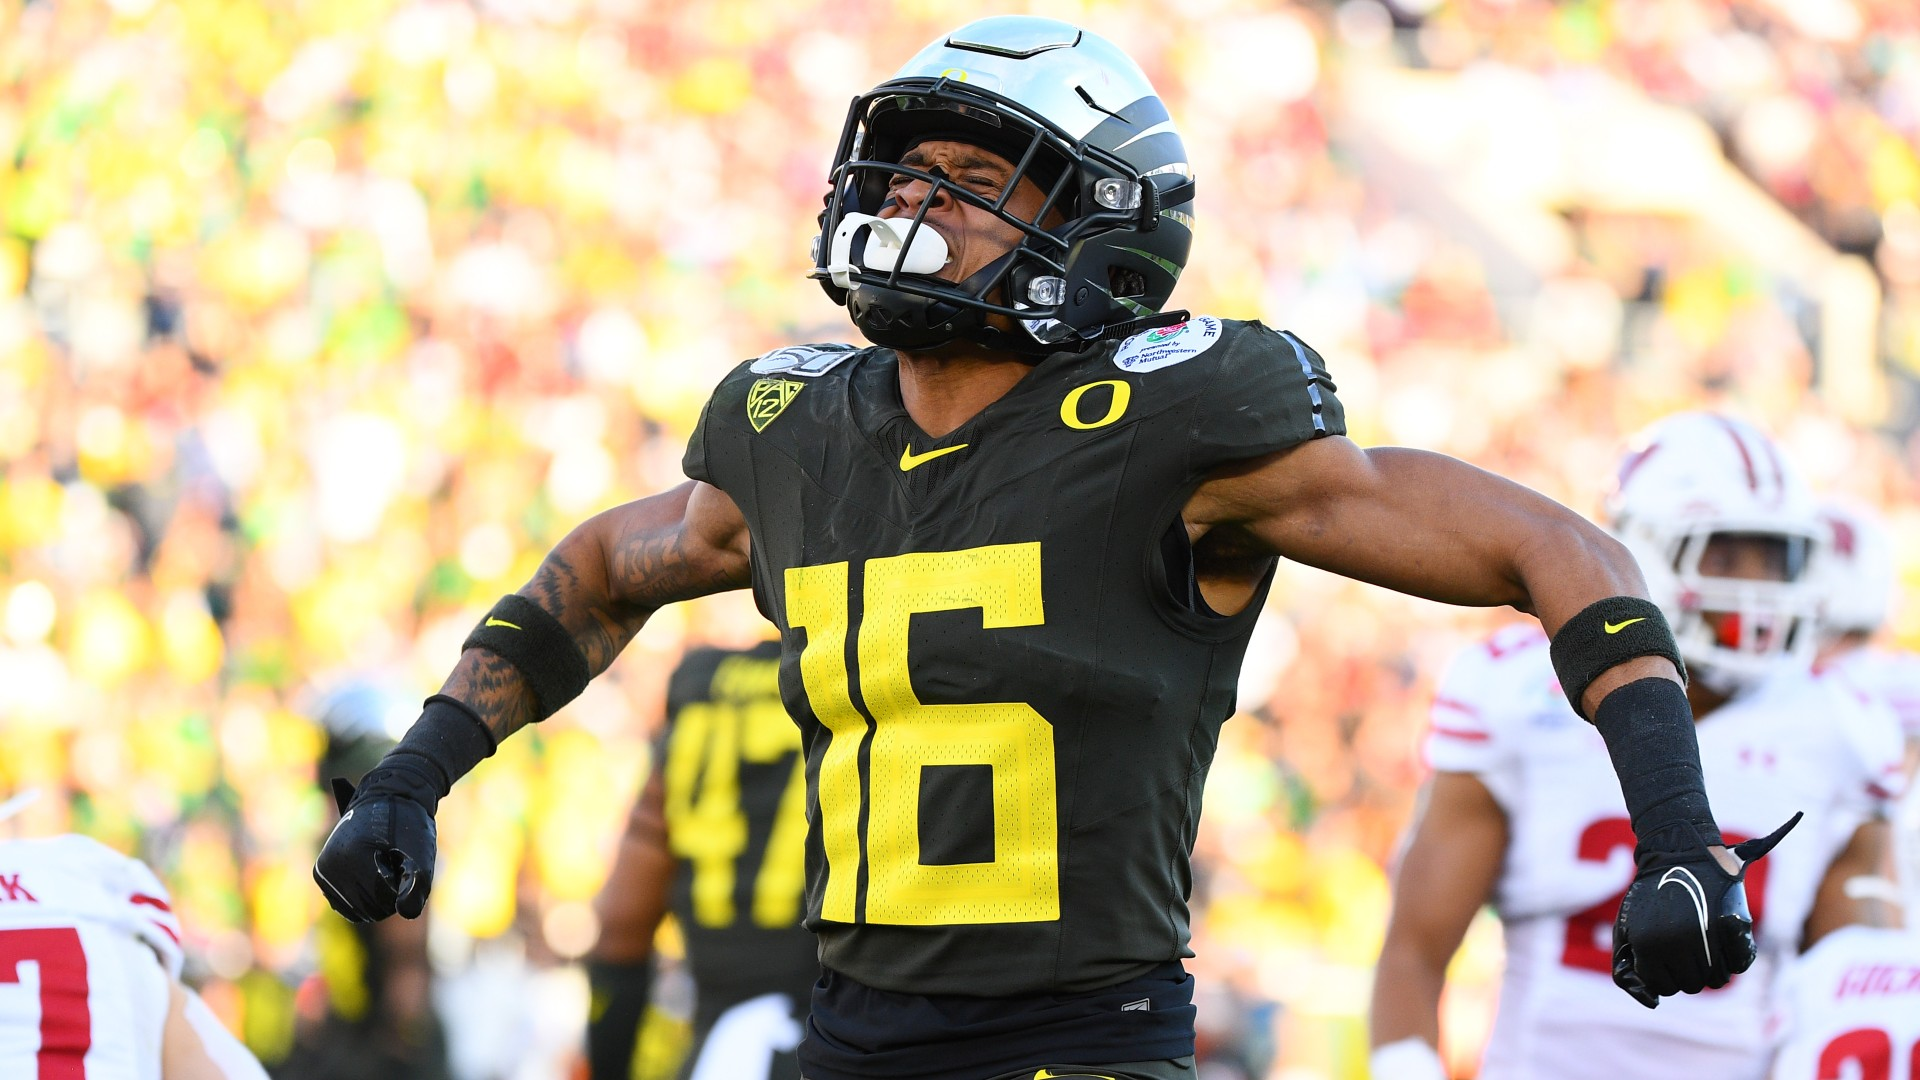 College Football Odds & Picks For Stanford vs. Oregon: Betting Value Lies With Ducks article feature image